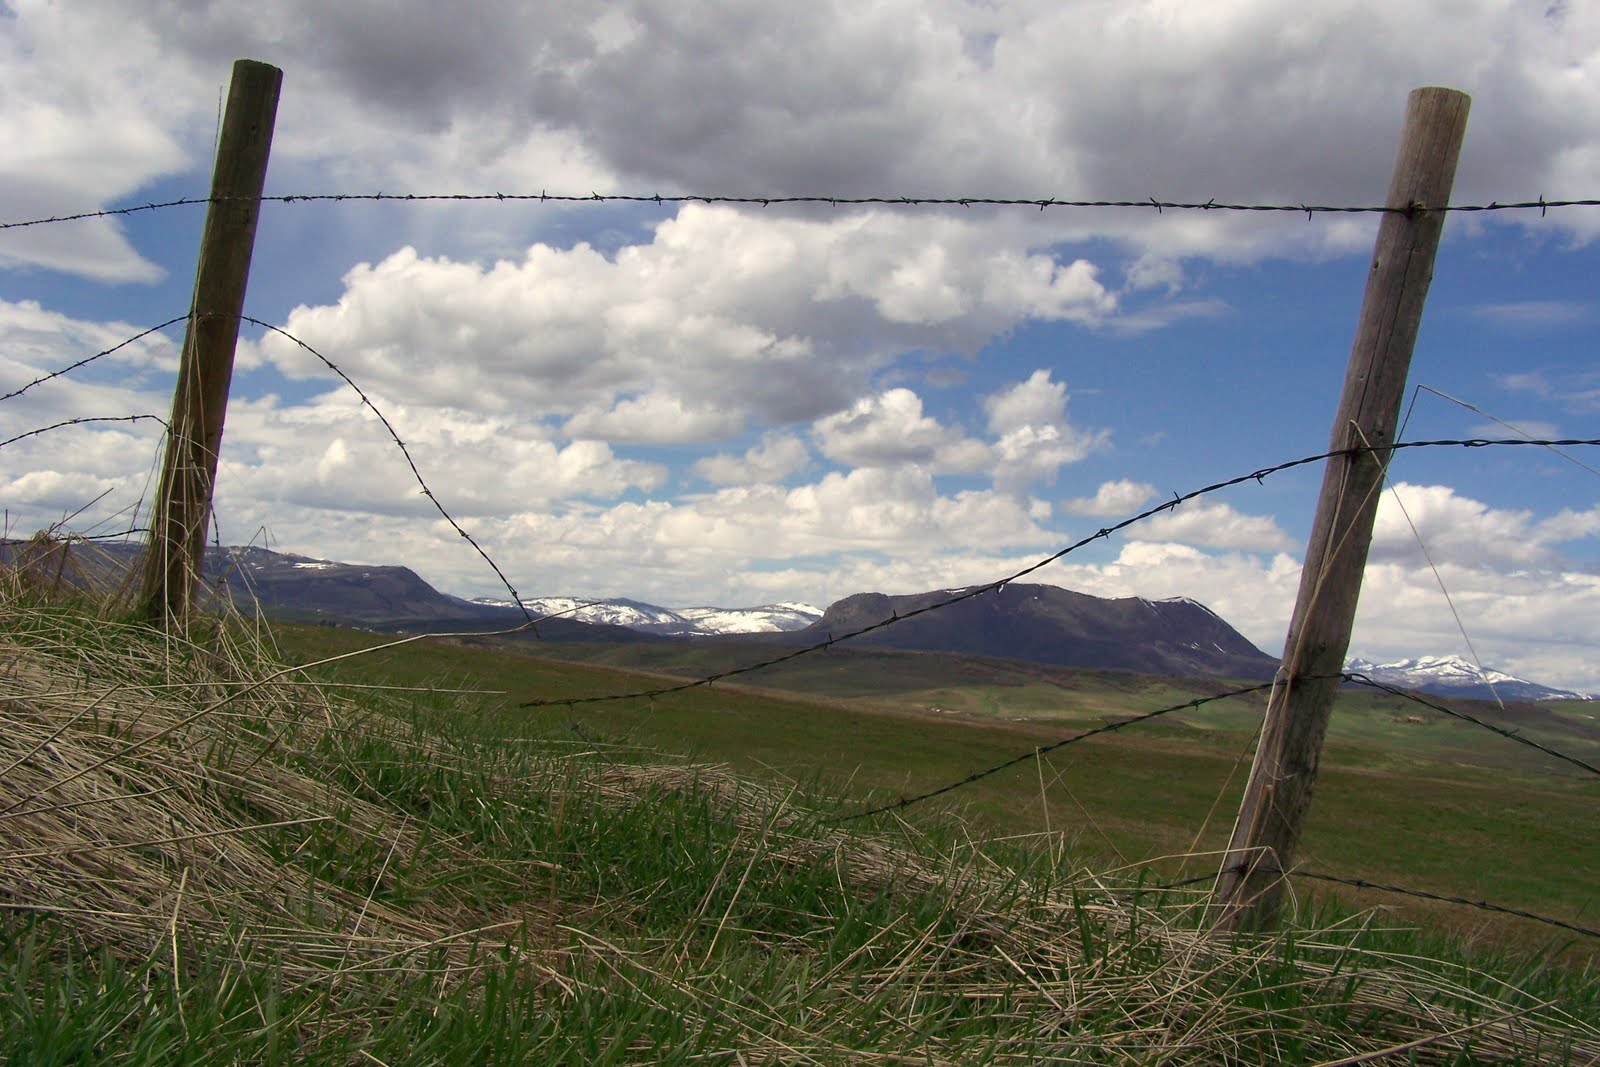 Meanwhile, Out at the Ranch: Fencing Season